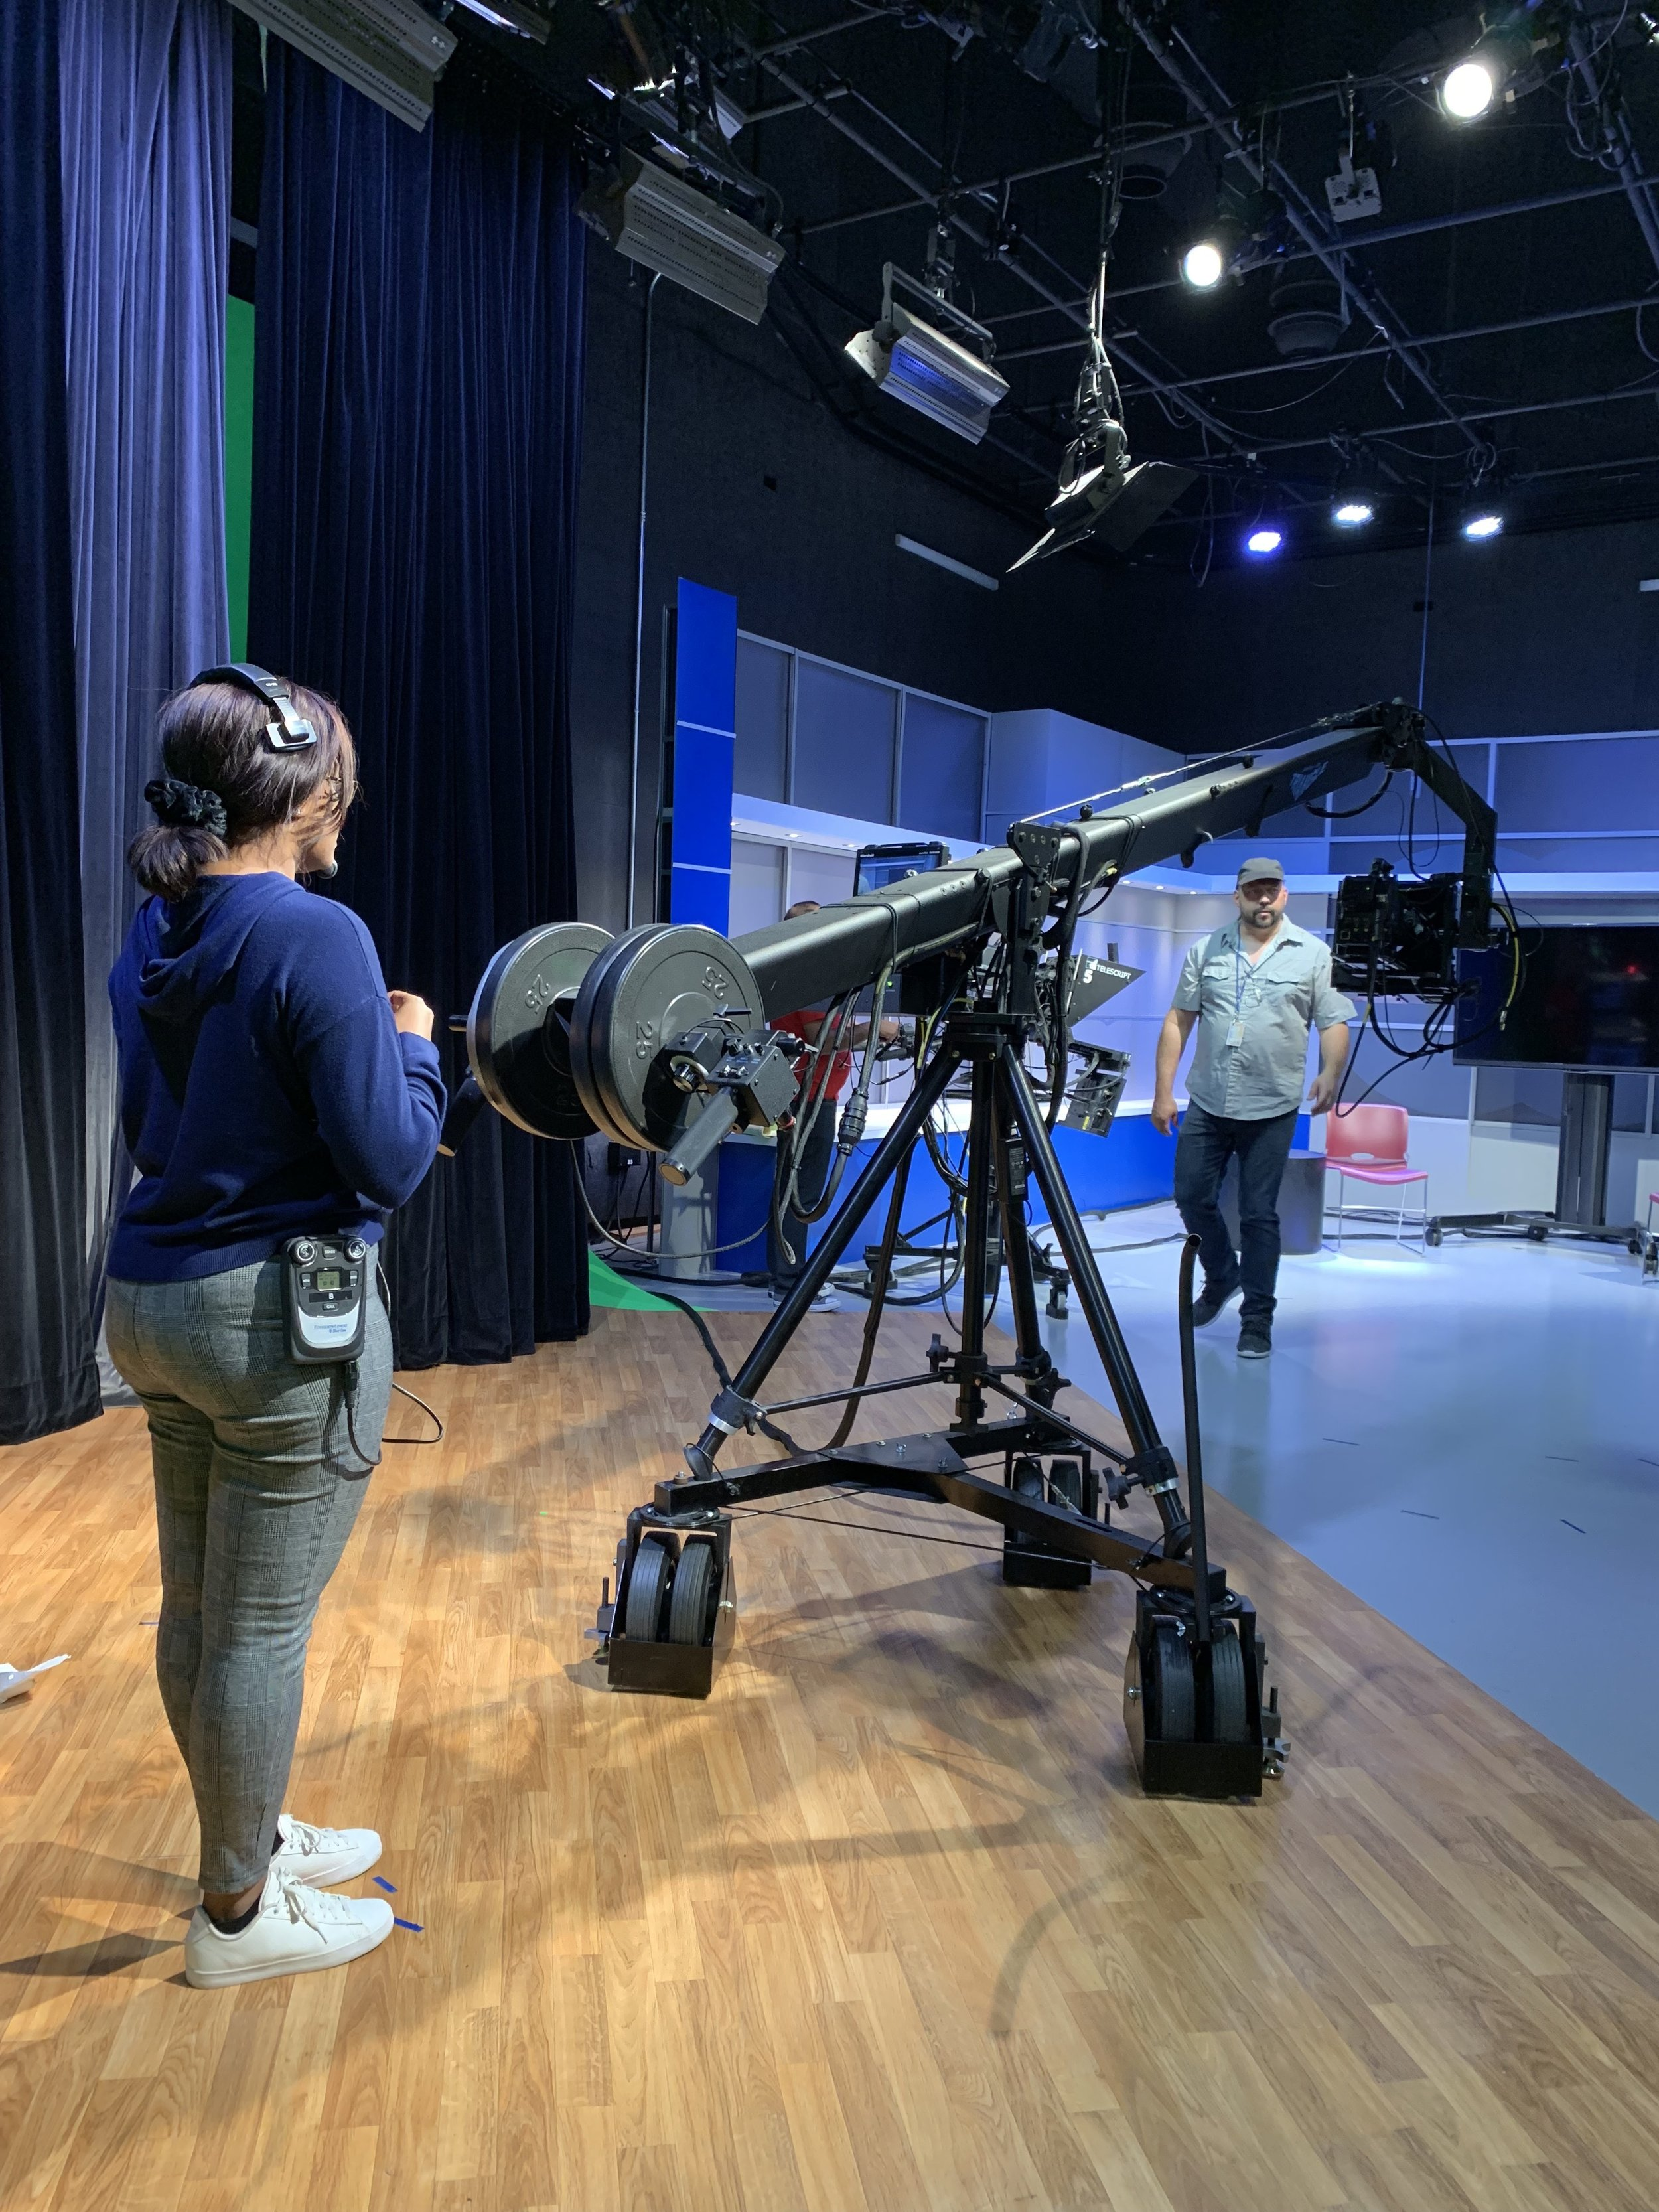 A member of the production team preparing for the live event broadcast